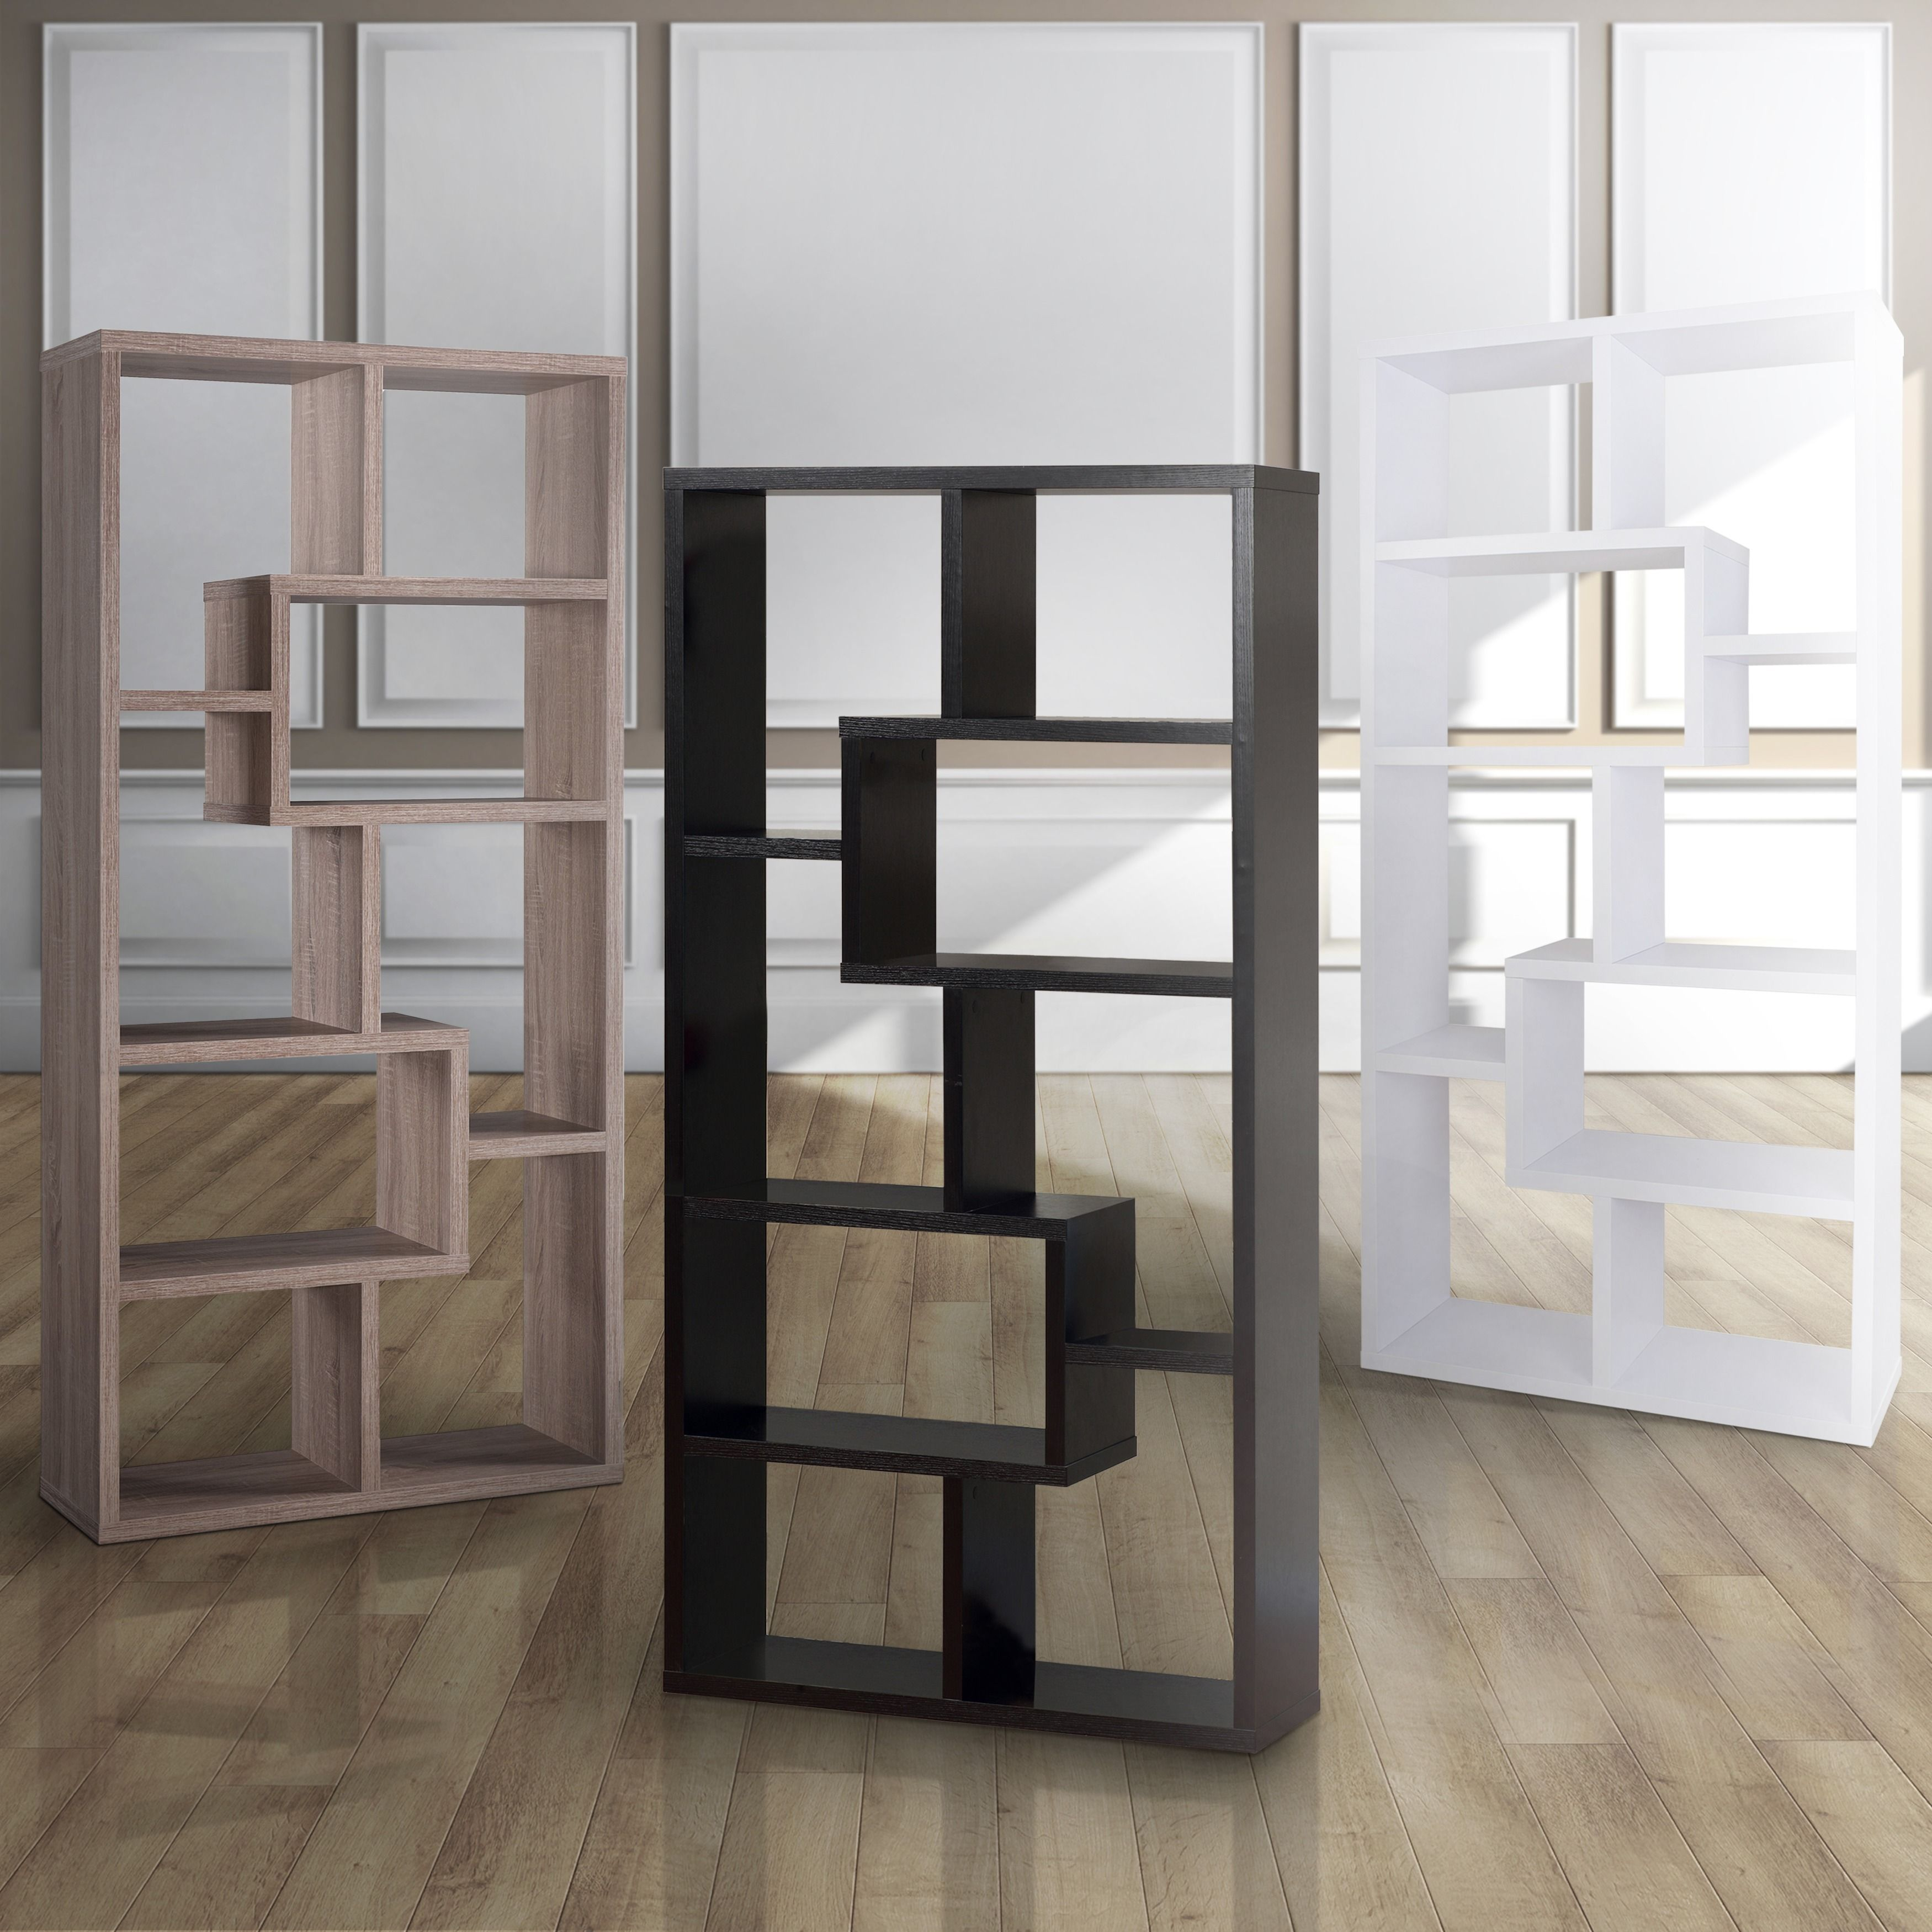 Book Shelves Home Goods: Free Shipping On Orders Over $45